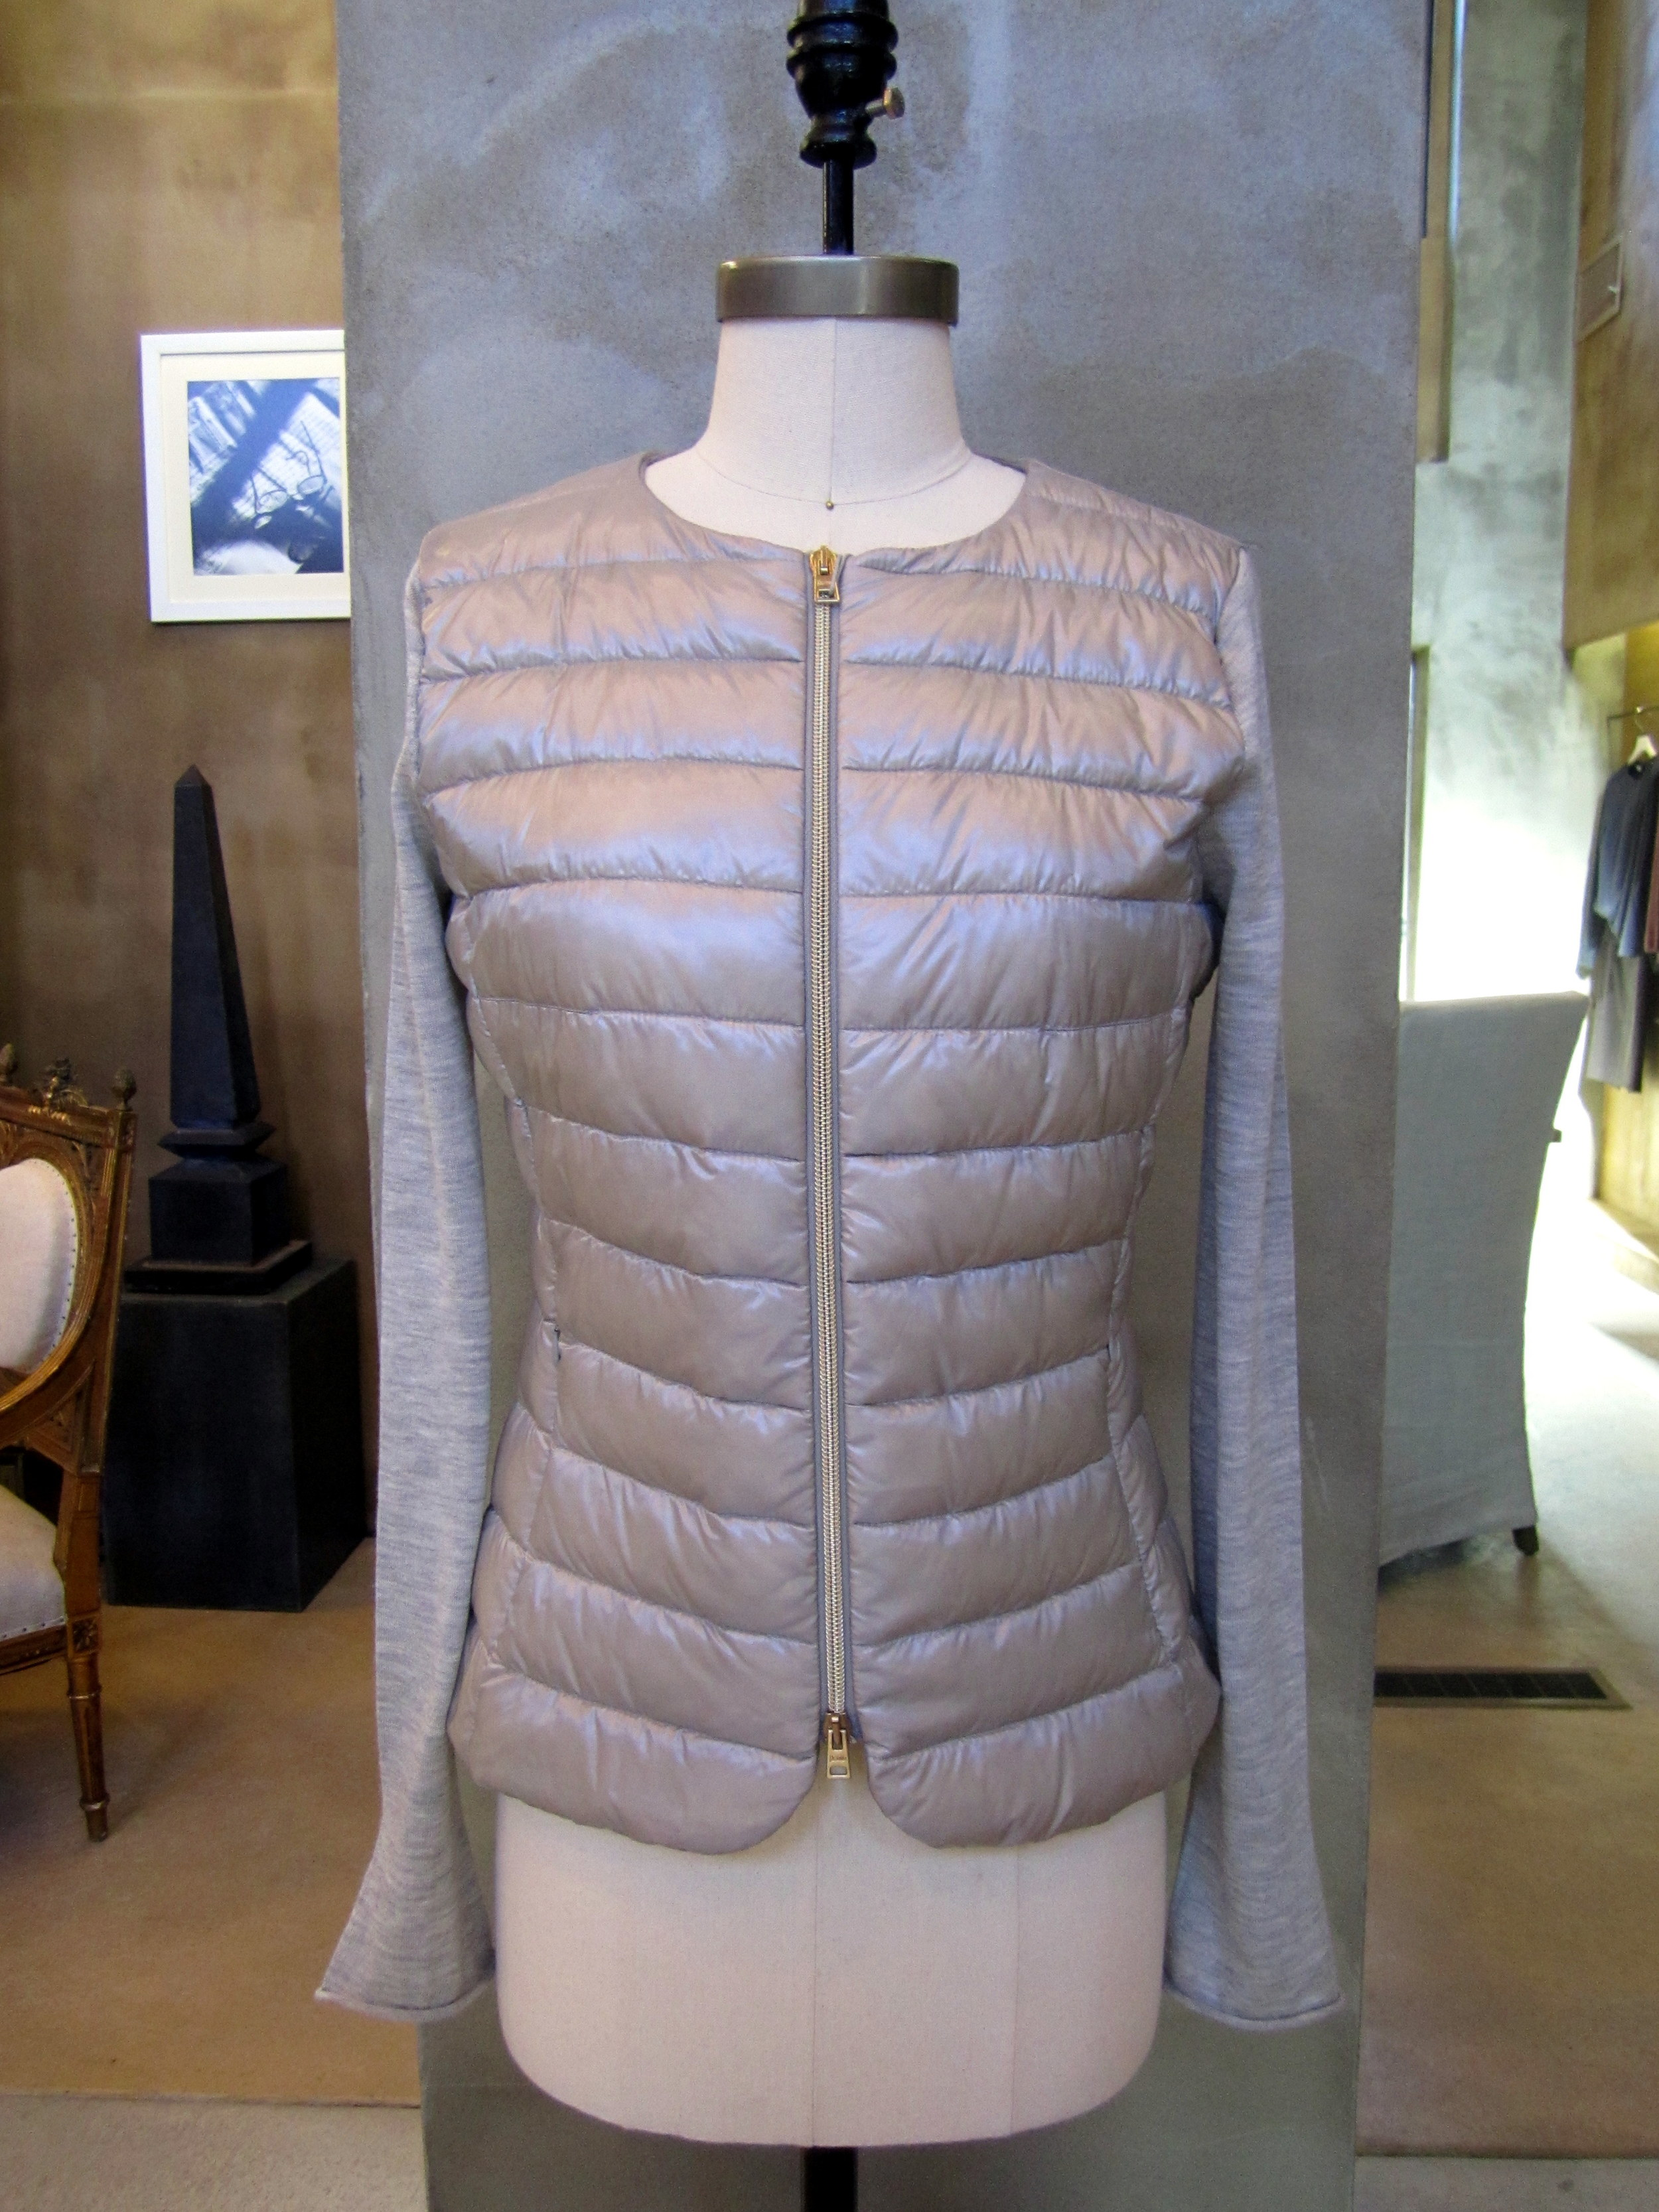 Herno Padded Down Zip Vest with Silk/Cashmere Sleeves. Silver. Made in Italy. $702. Available in size 6 and 12.